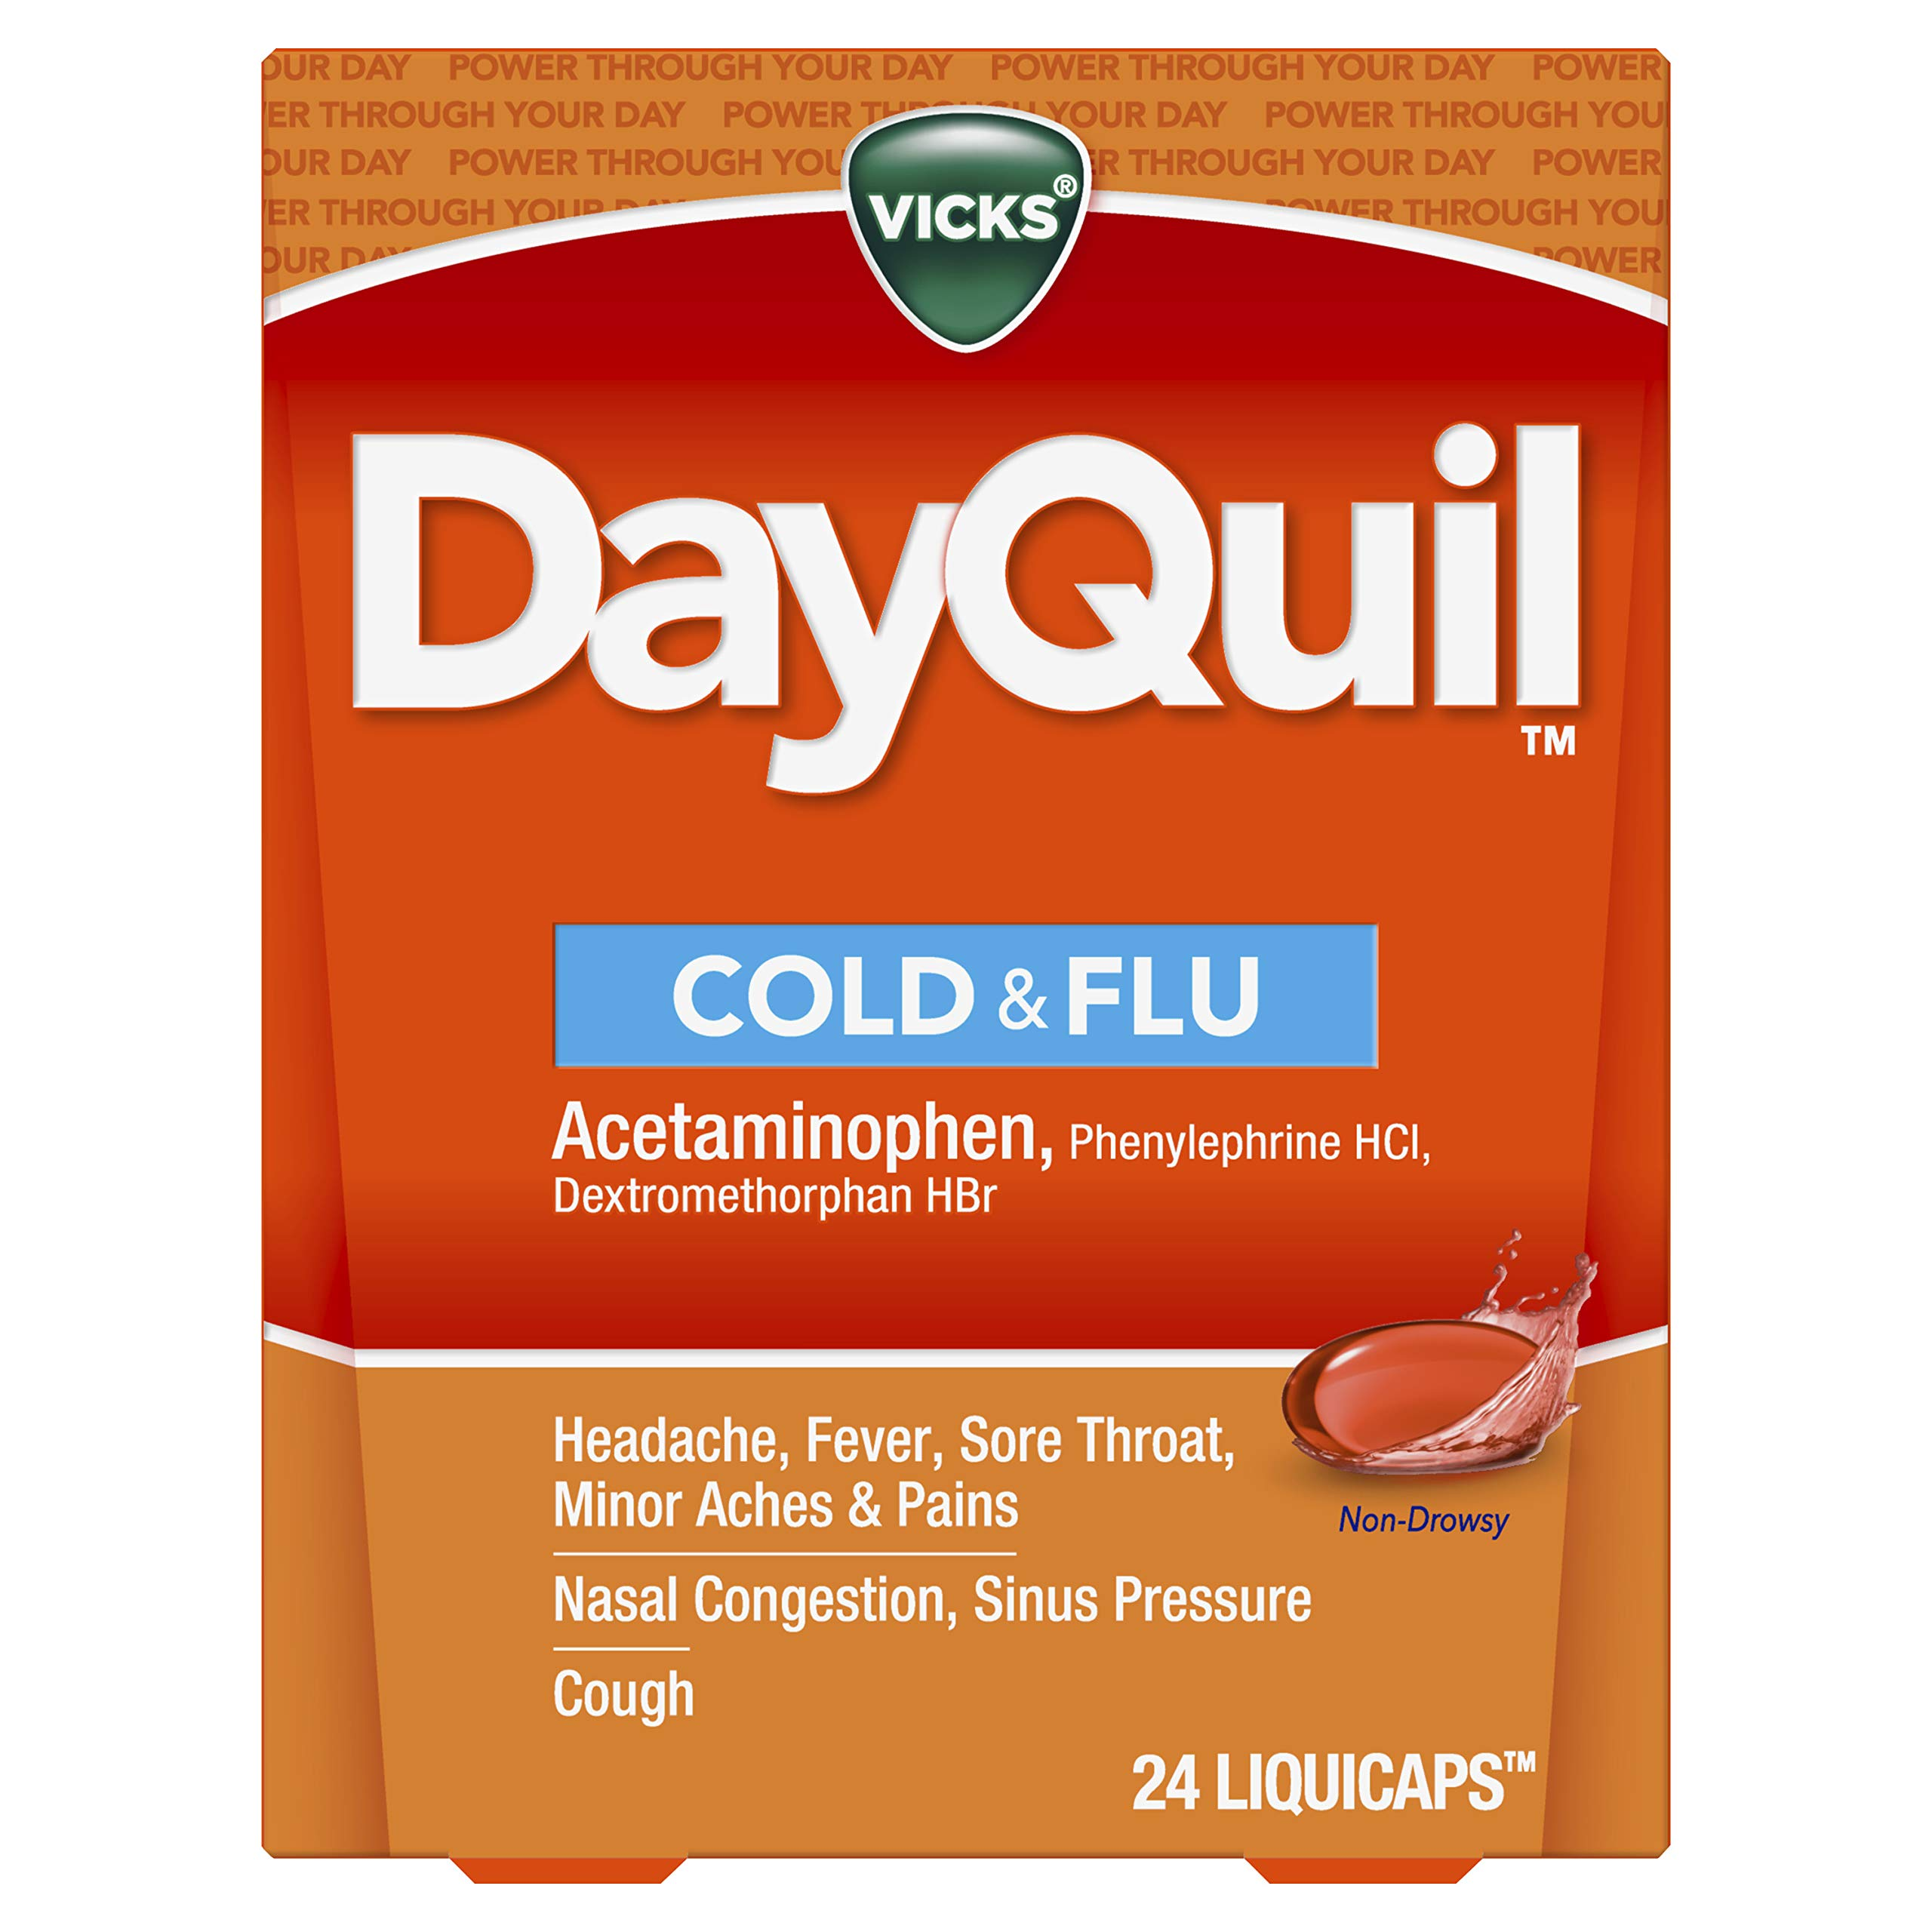 Vicks DayQuil LiquiCaps, Cough, Cold & Flu Relief, Sore Throat, Fever, & Congestion Relief, Non- Drowsy, 24 LiquiCaps